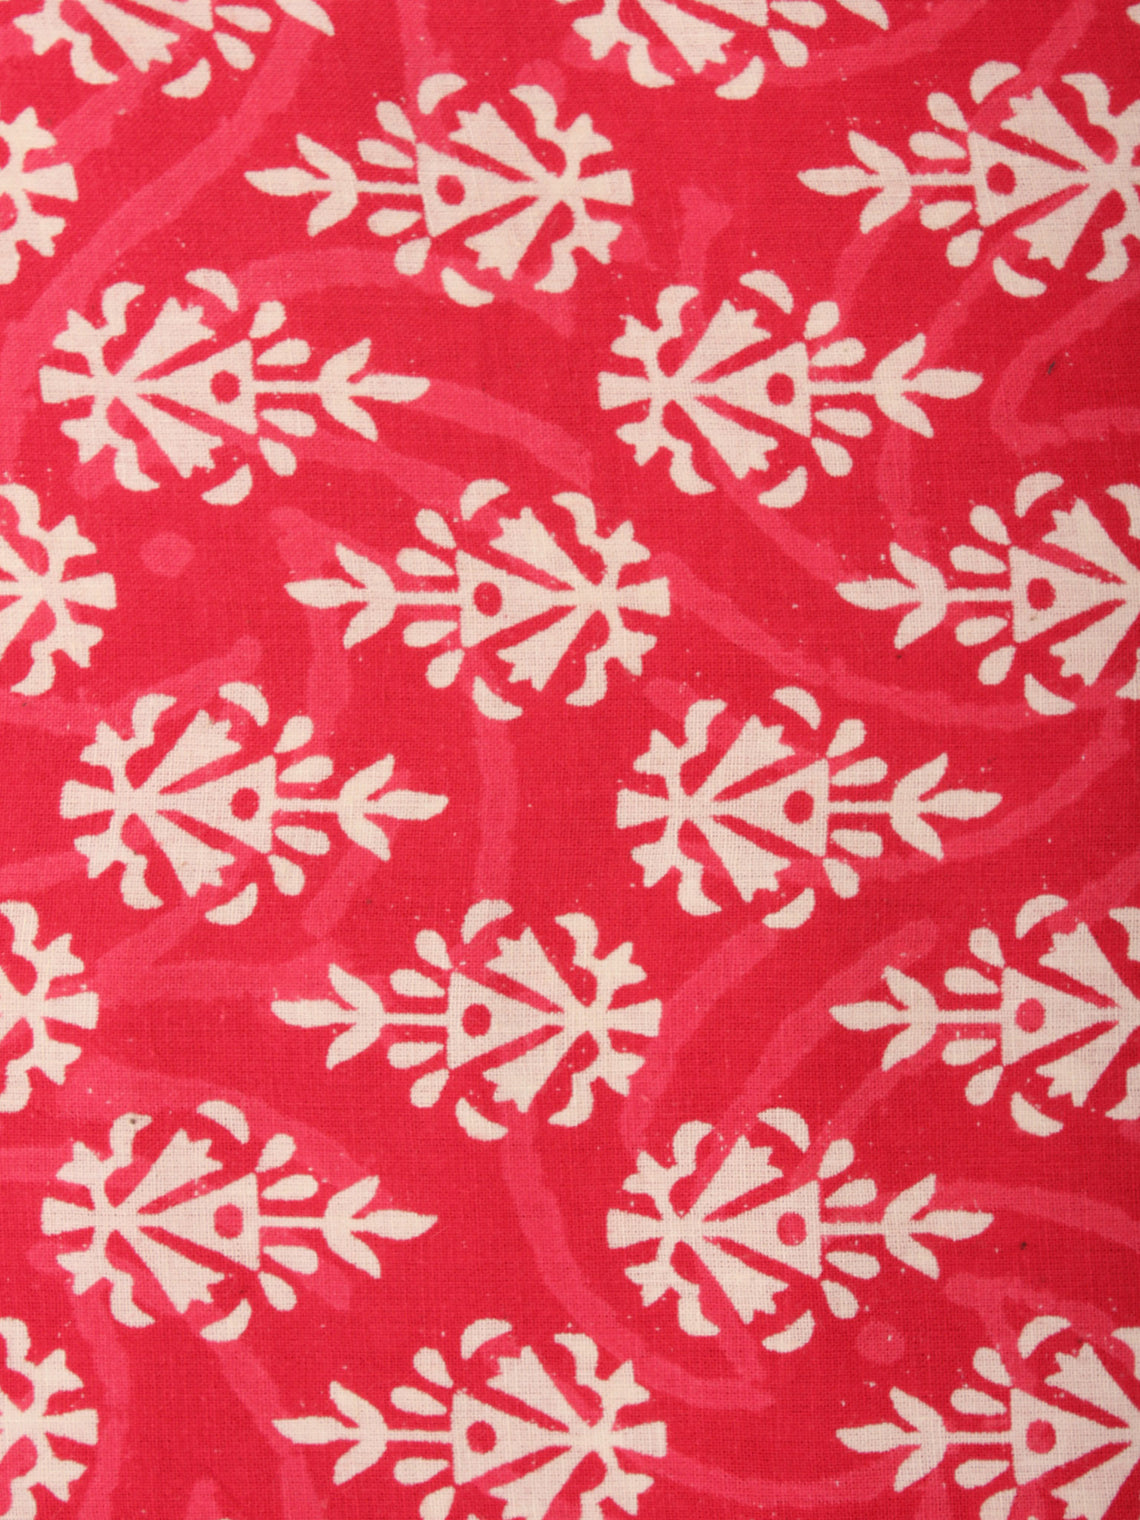 Red Ivory Hand Block Printed Cotton Cambric Fabric Per Meter - F0916450